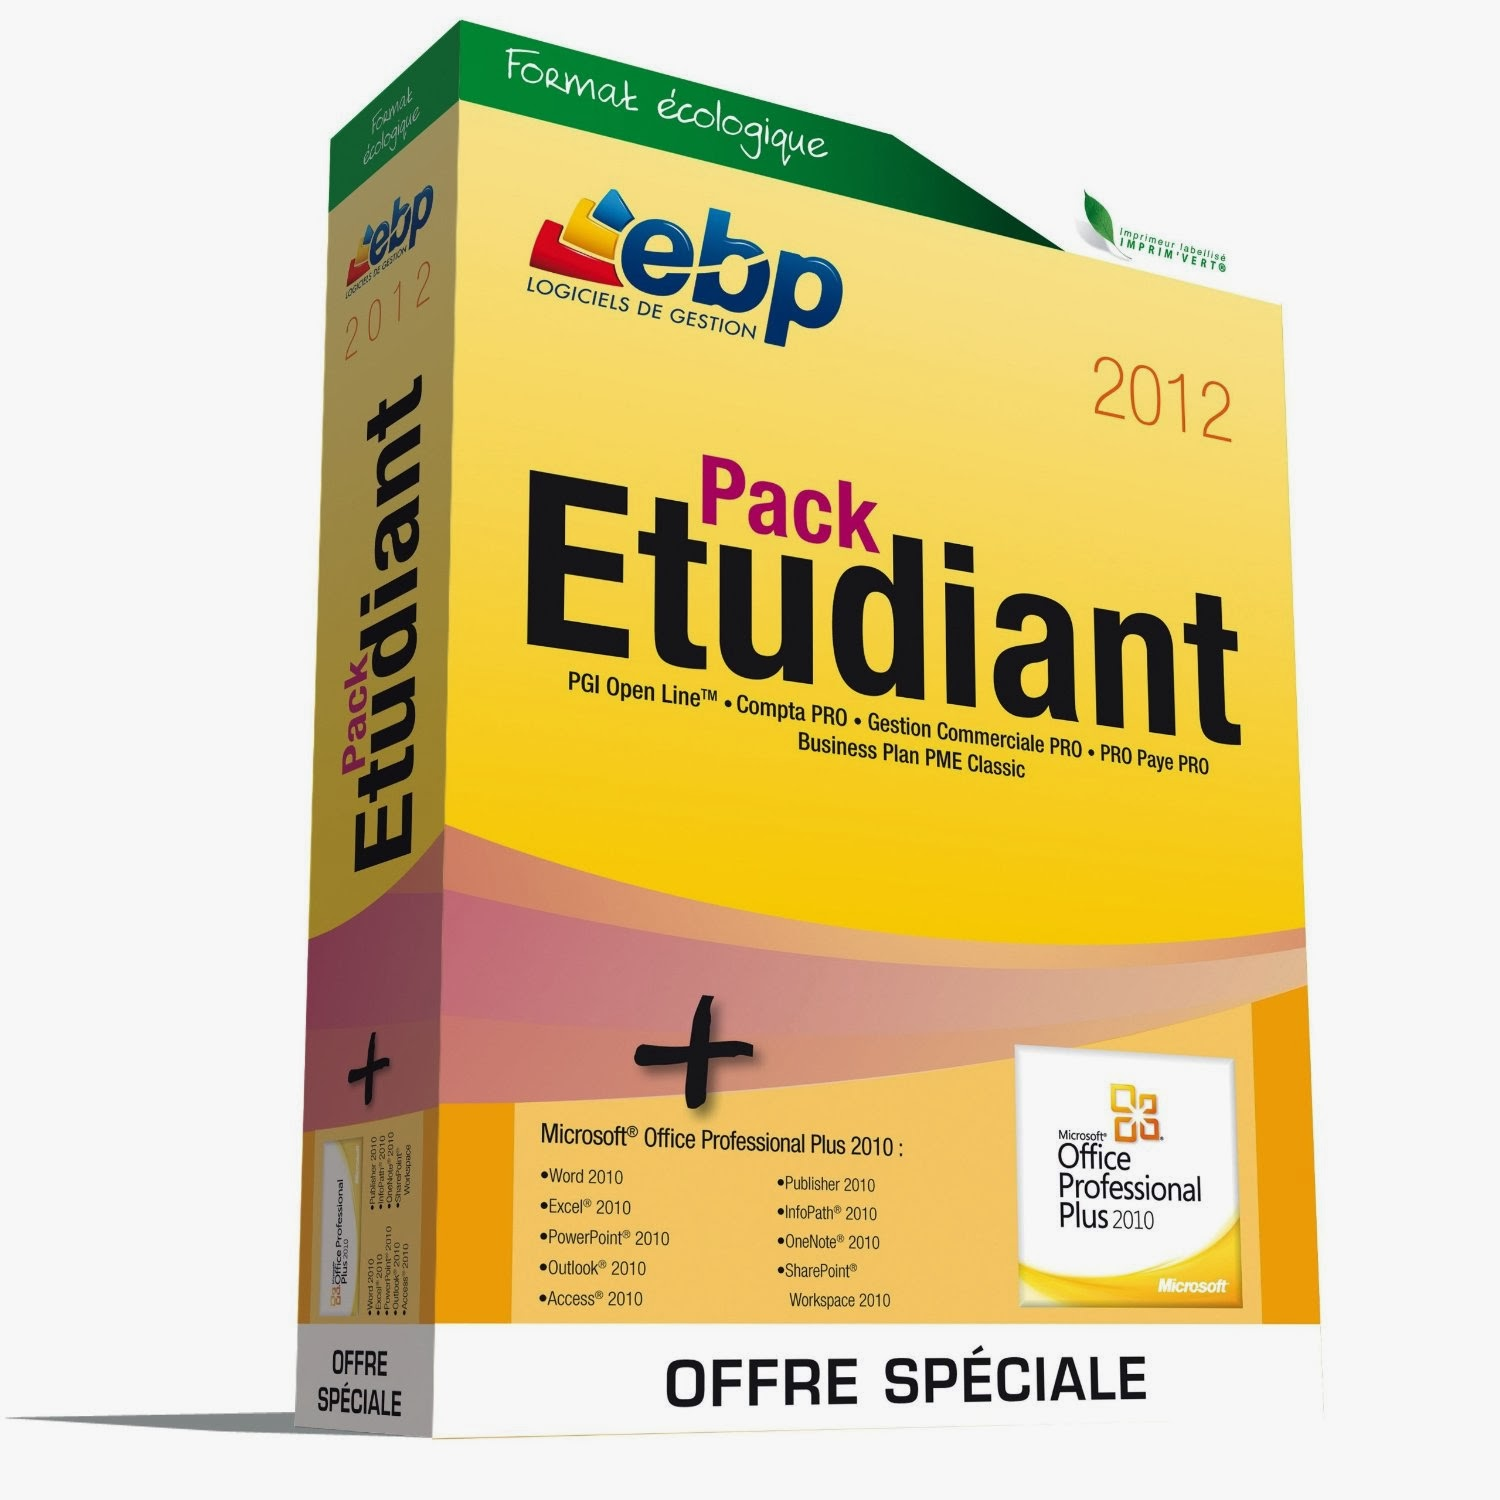 Ebp pack etudiant 2012 offre sp ciale ms 2010 keygen crack telechargement gratuit windows - Pack office gratuit etudiant ...